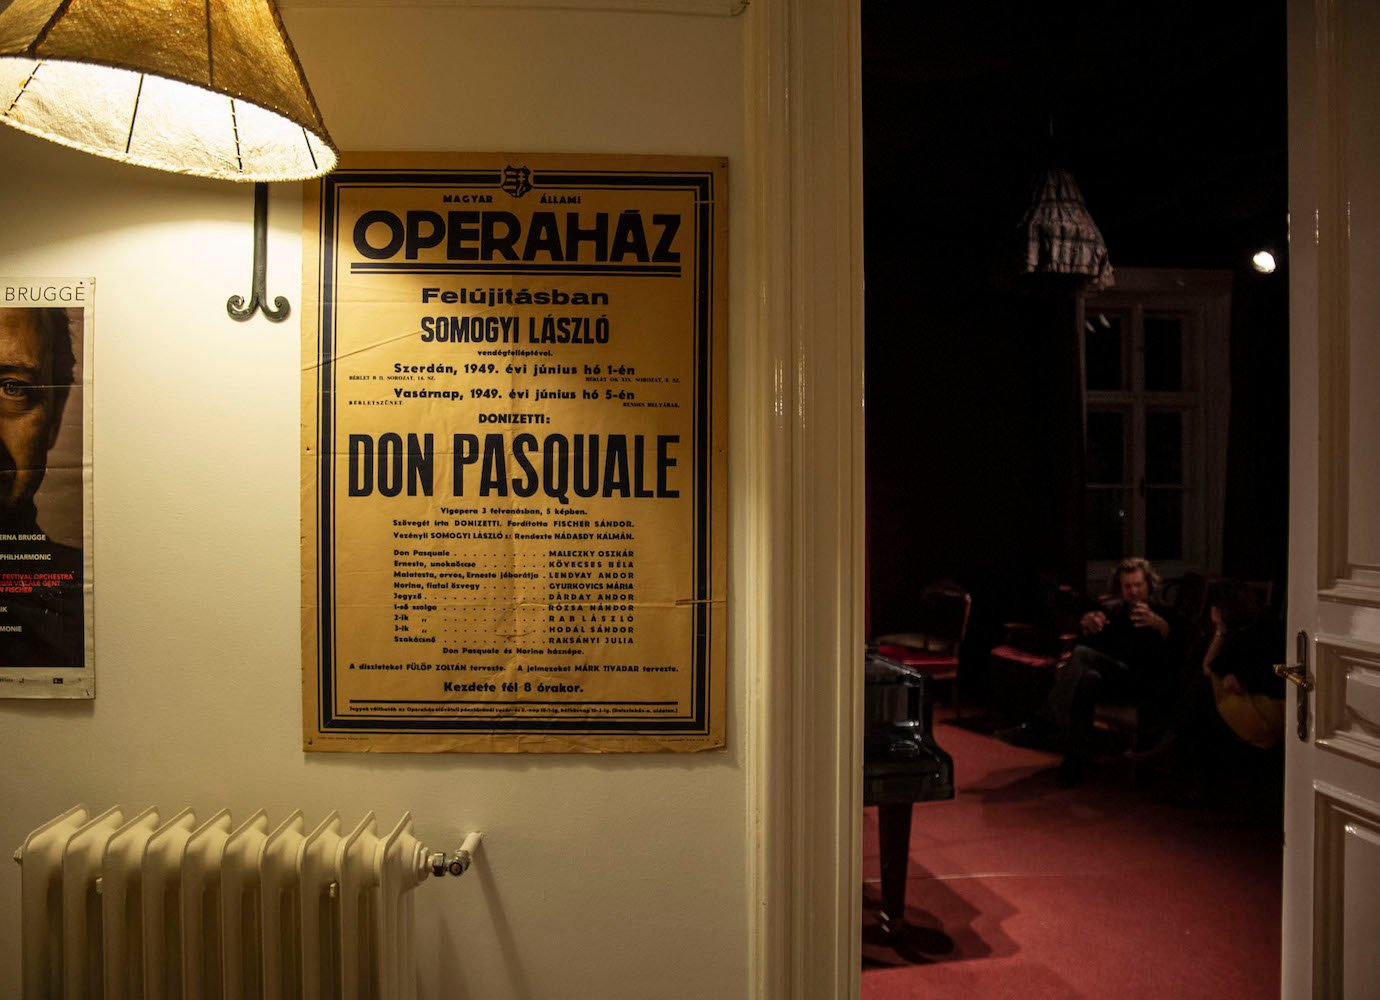 Inside the eccentric world of Budapest's living room theatre troupes you can order to your home